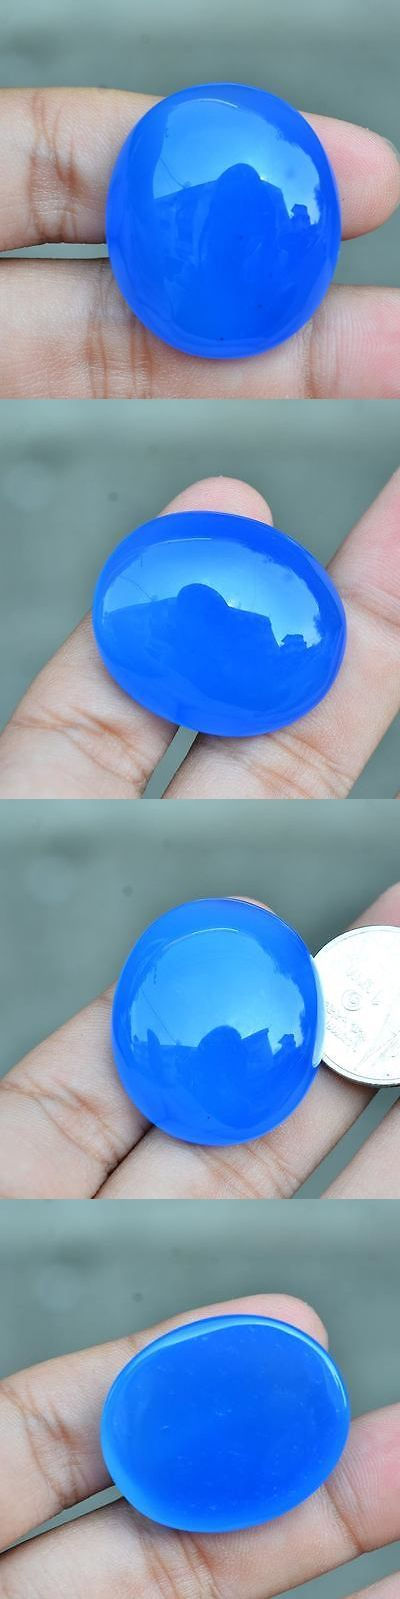 Chalcedony 110791: 52.62Ct Natural Cabochon Unheated Blue Chalcedony Africa #W -> BUY IT NOW ONLY: $34.99 on eBay!